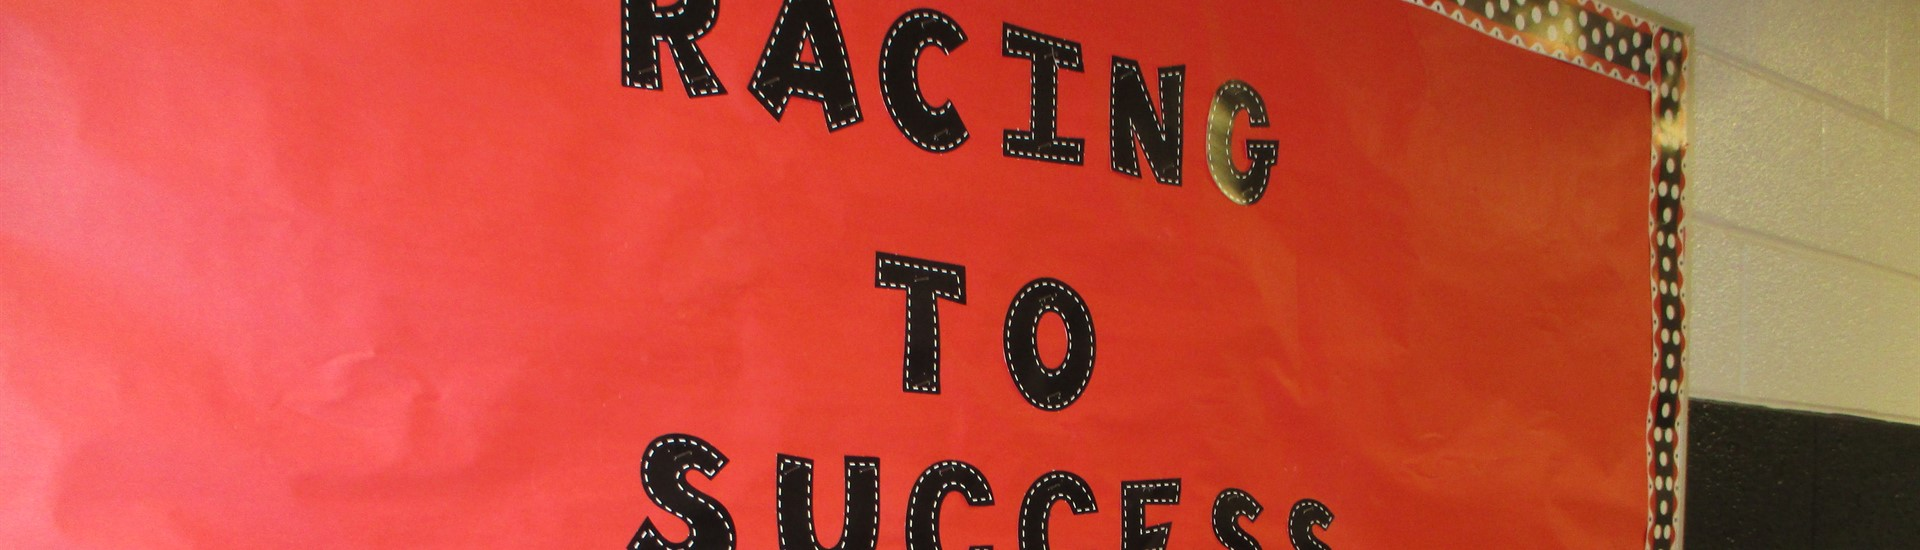 Oakland Cardinals - Racing to Success!